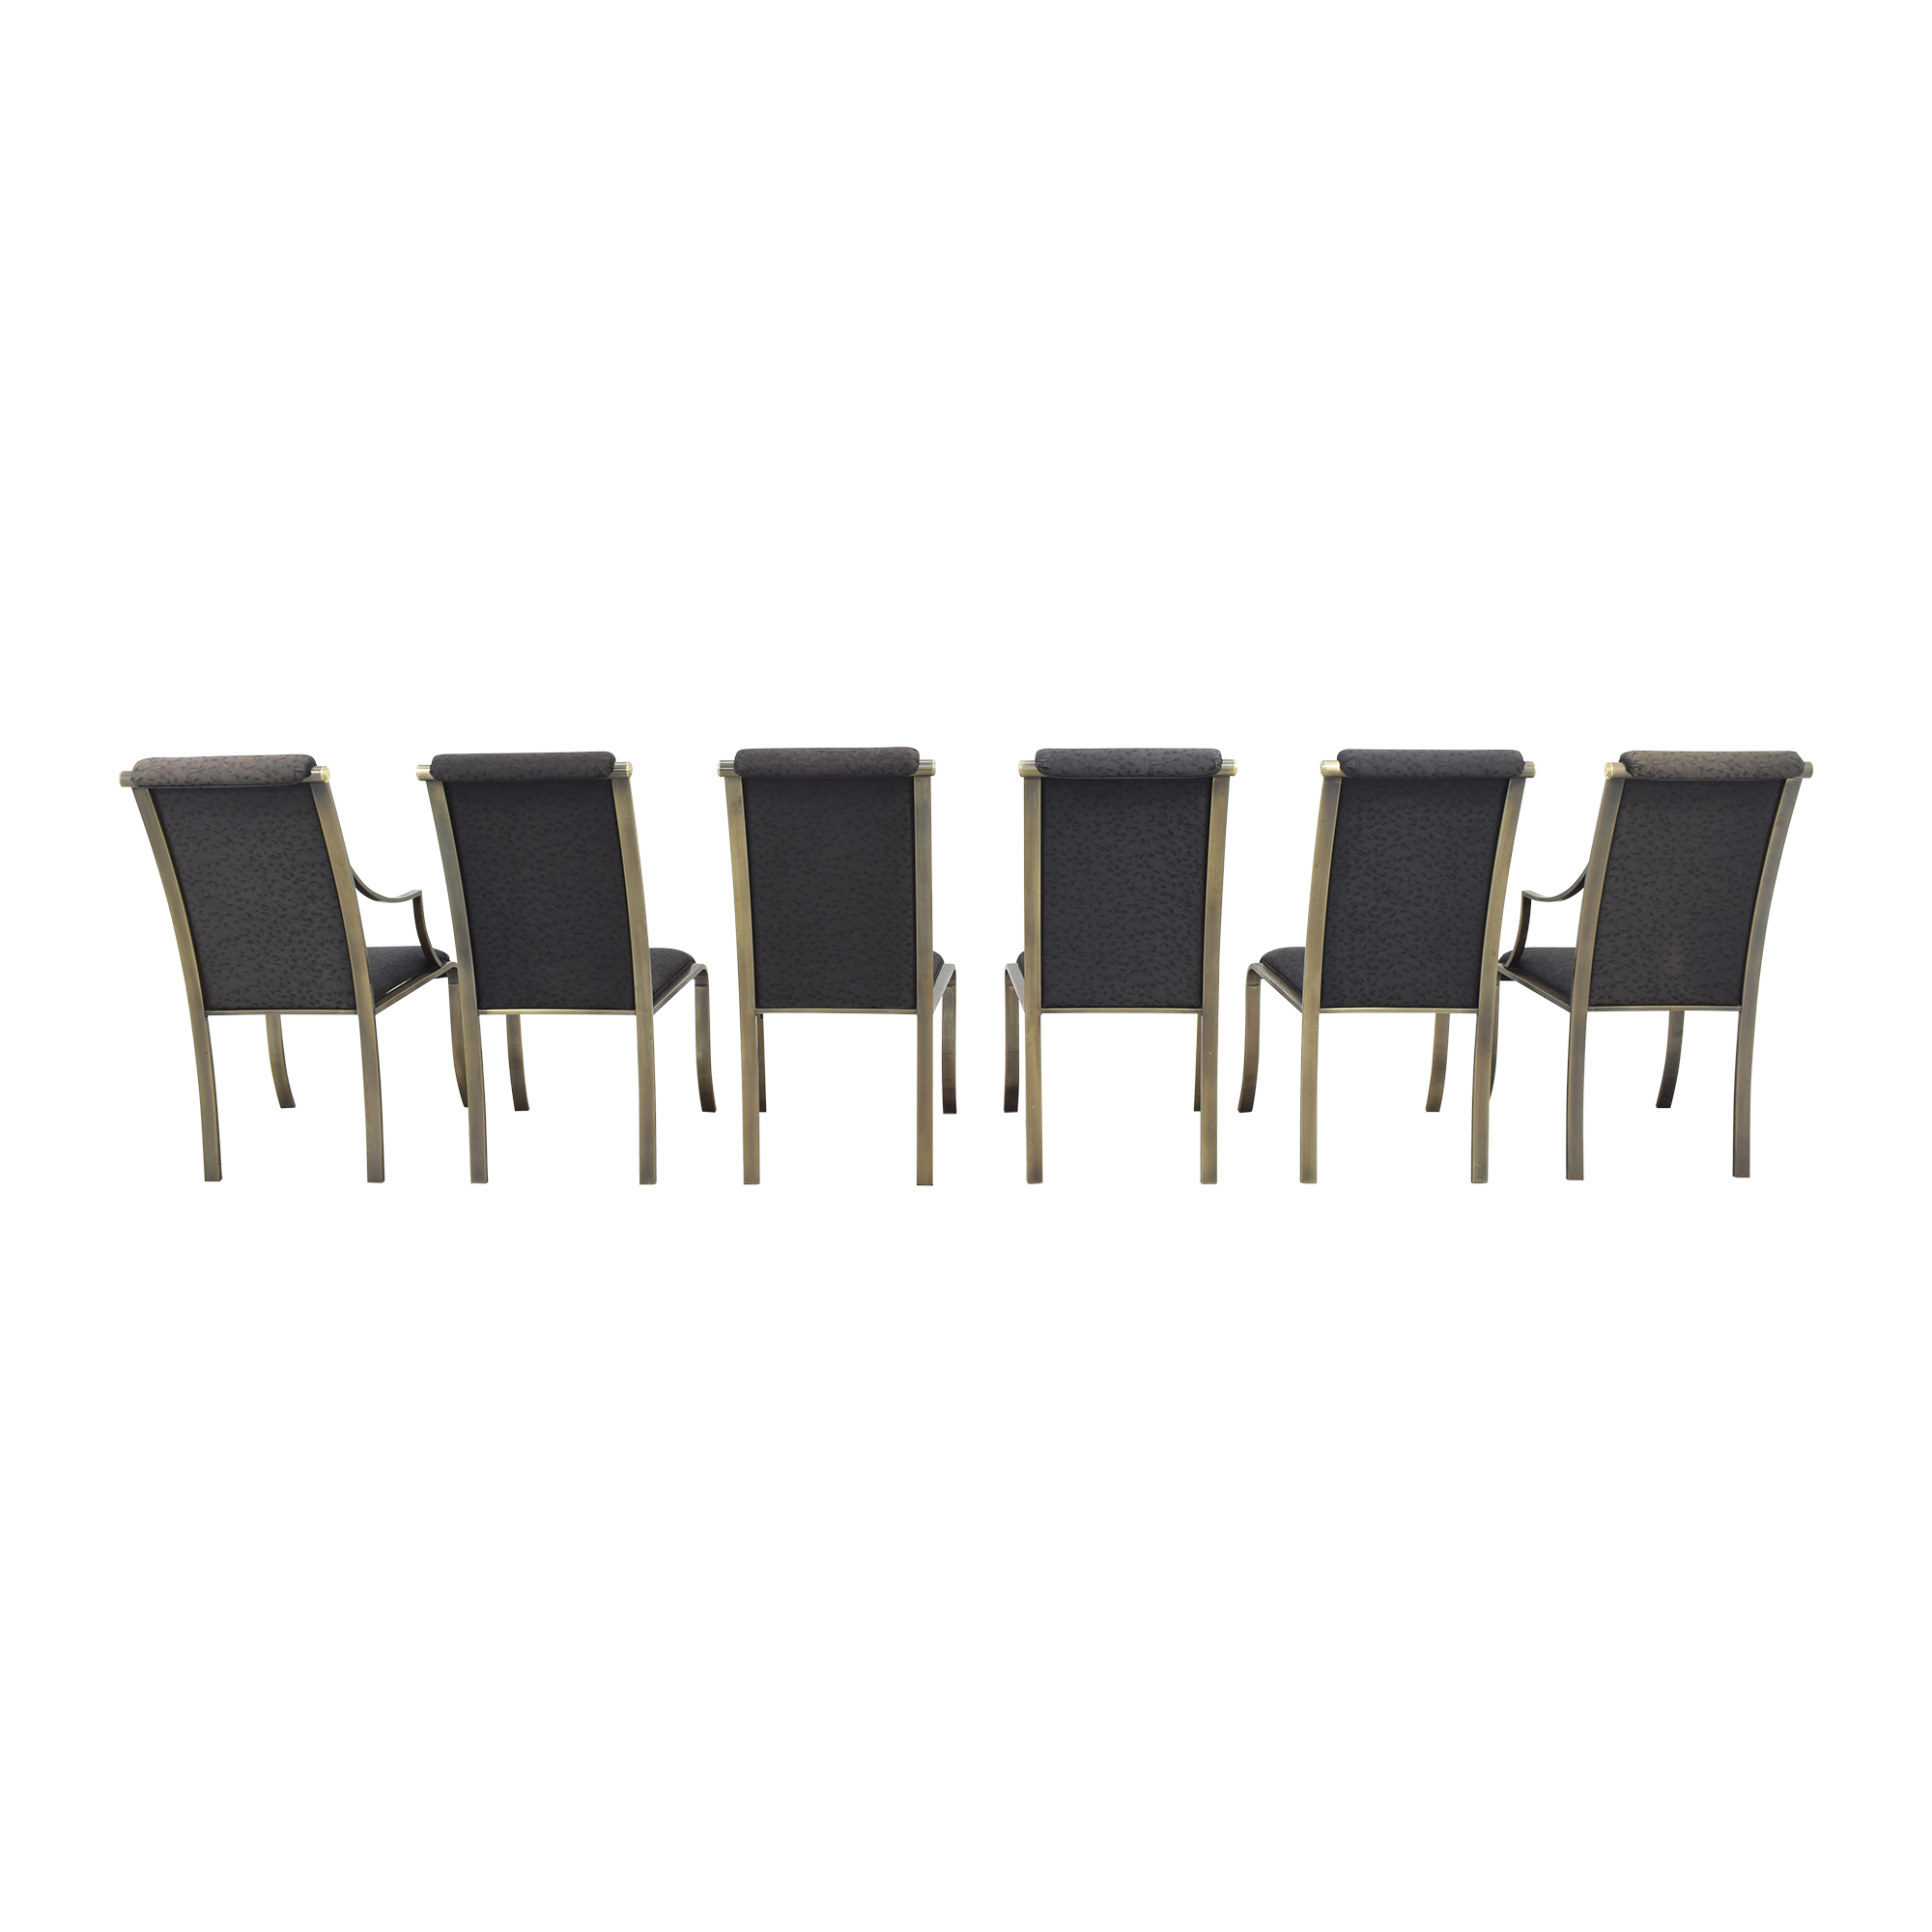 Design Institute America Design Institute America High Back Dining Chairs dimensions